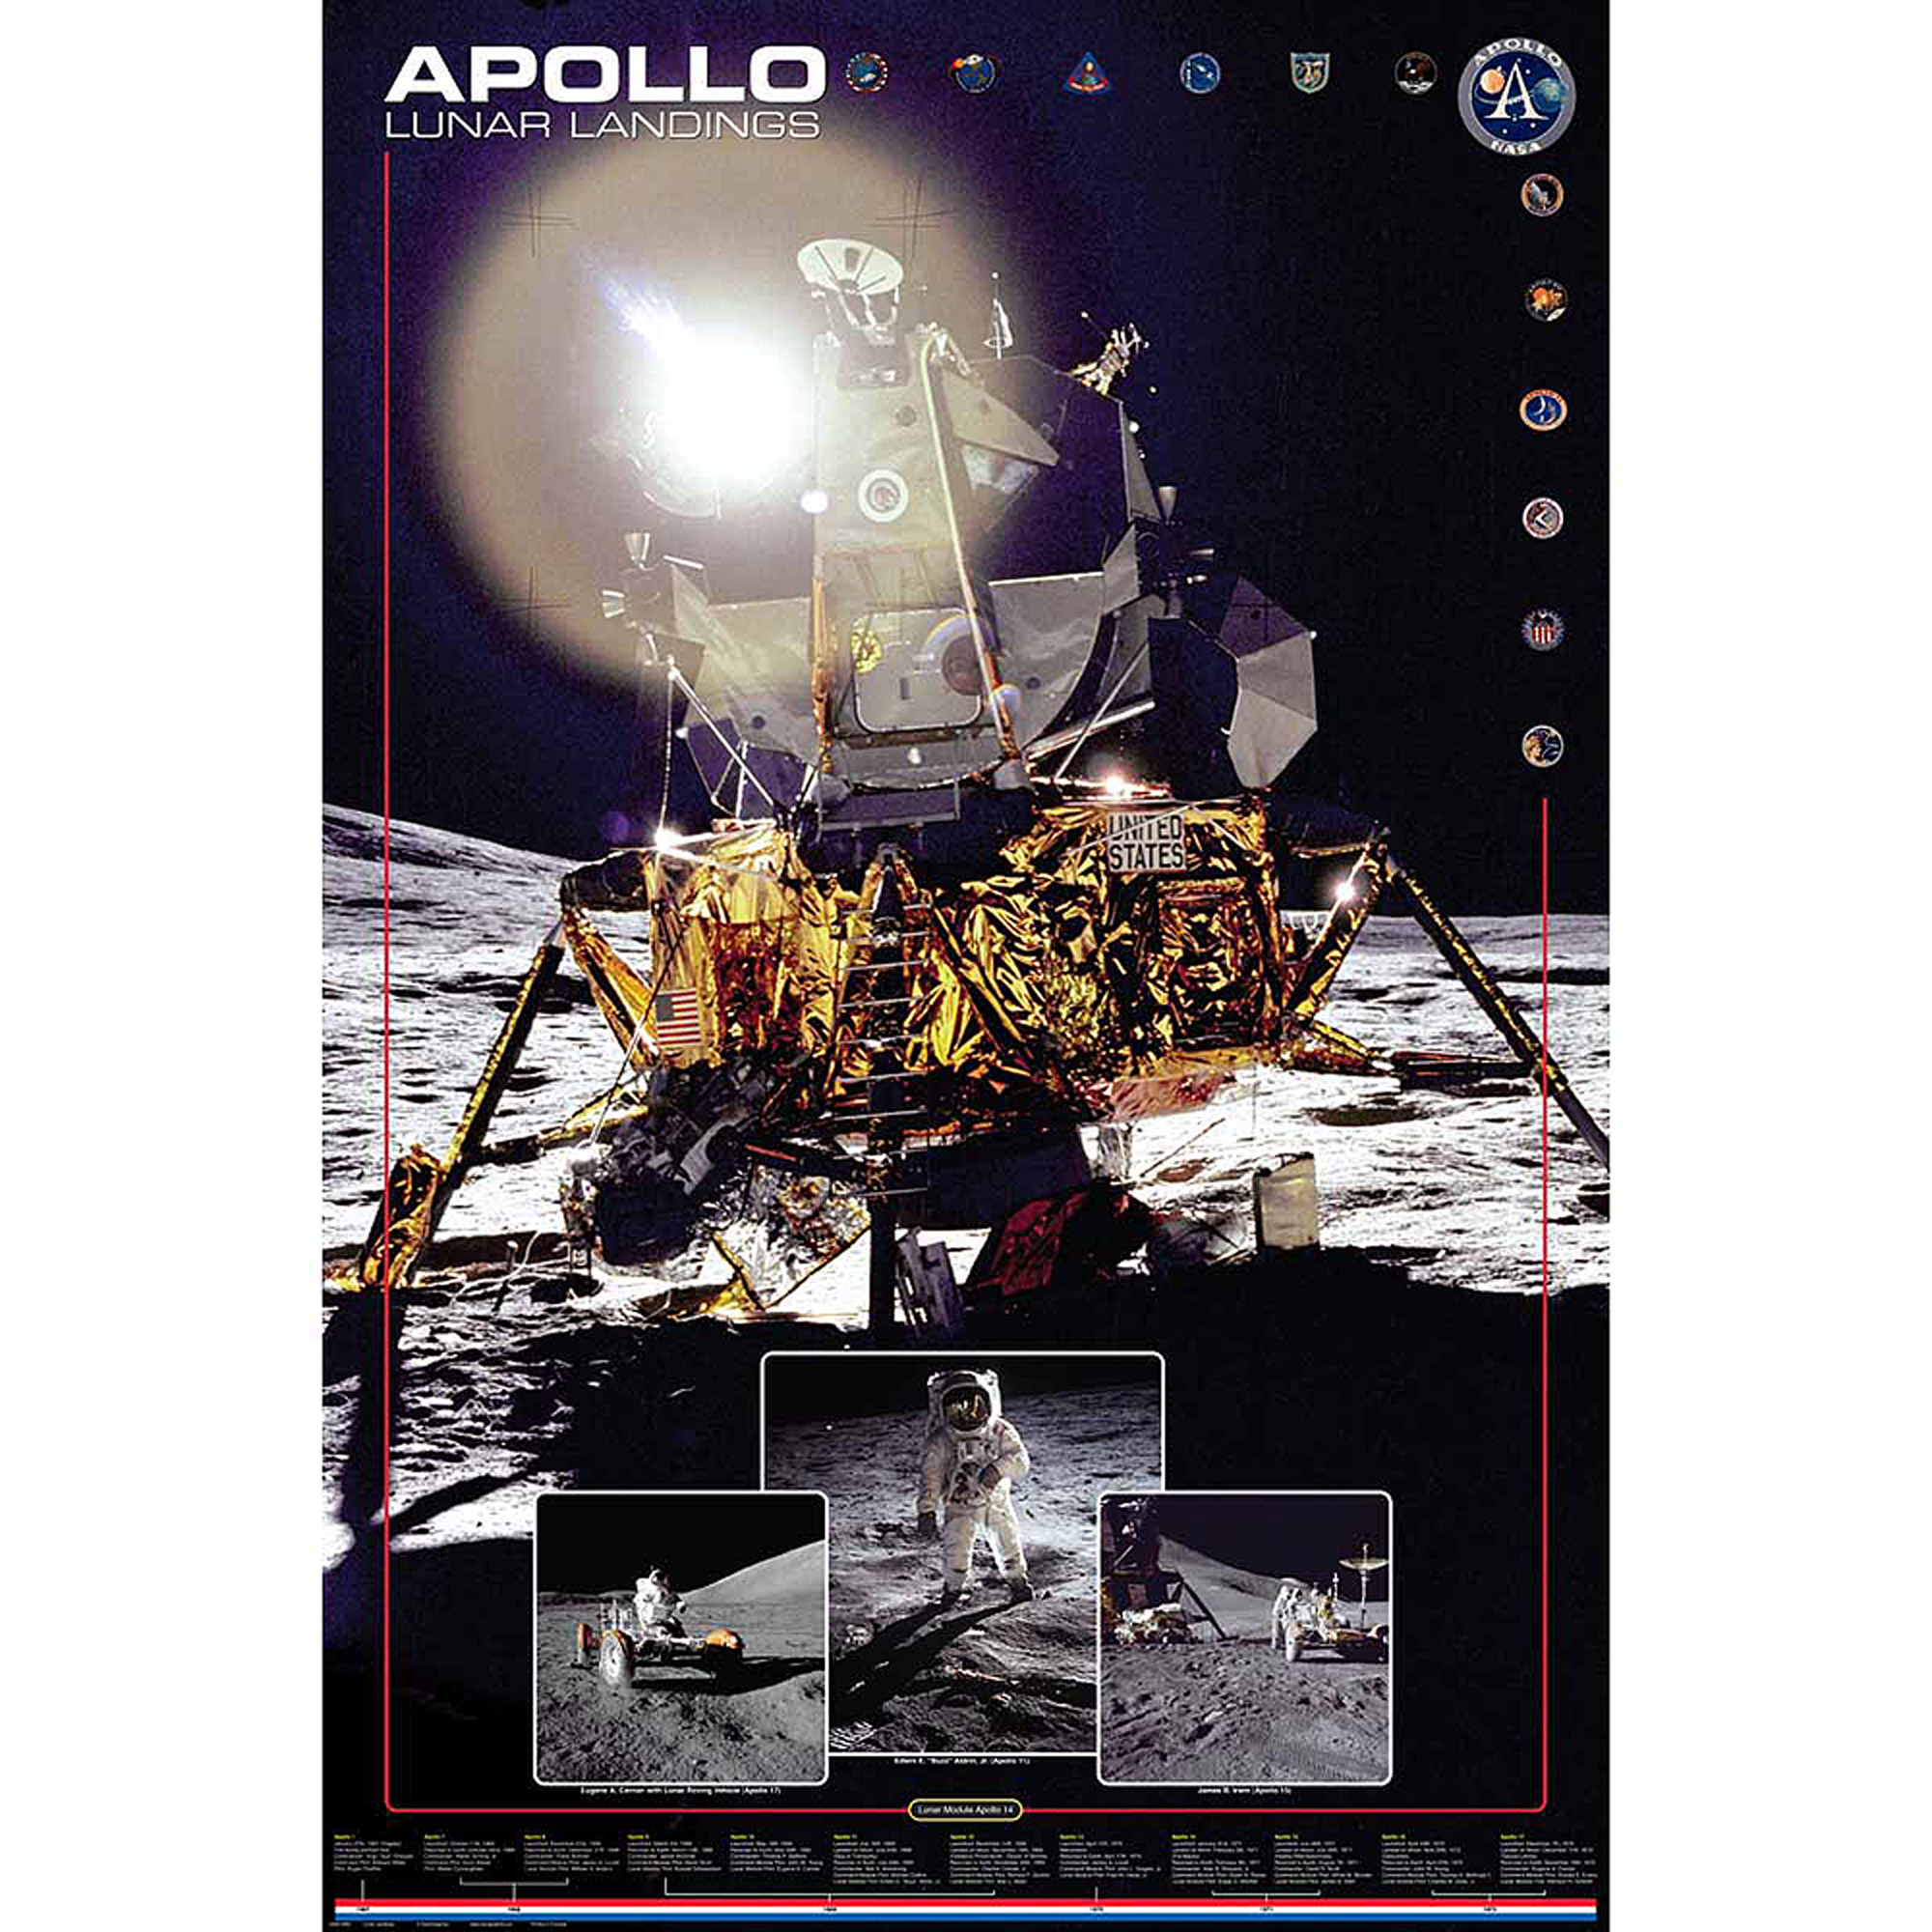 Apollo Lunar Landings Photography Art